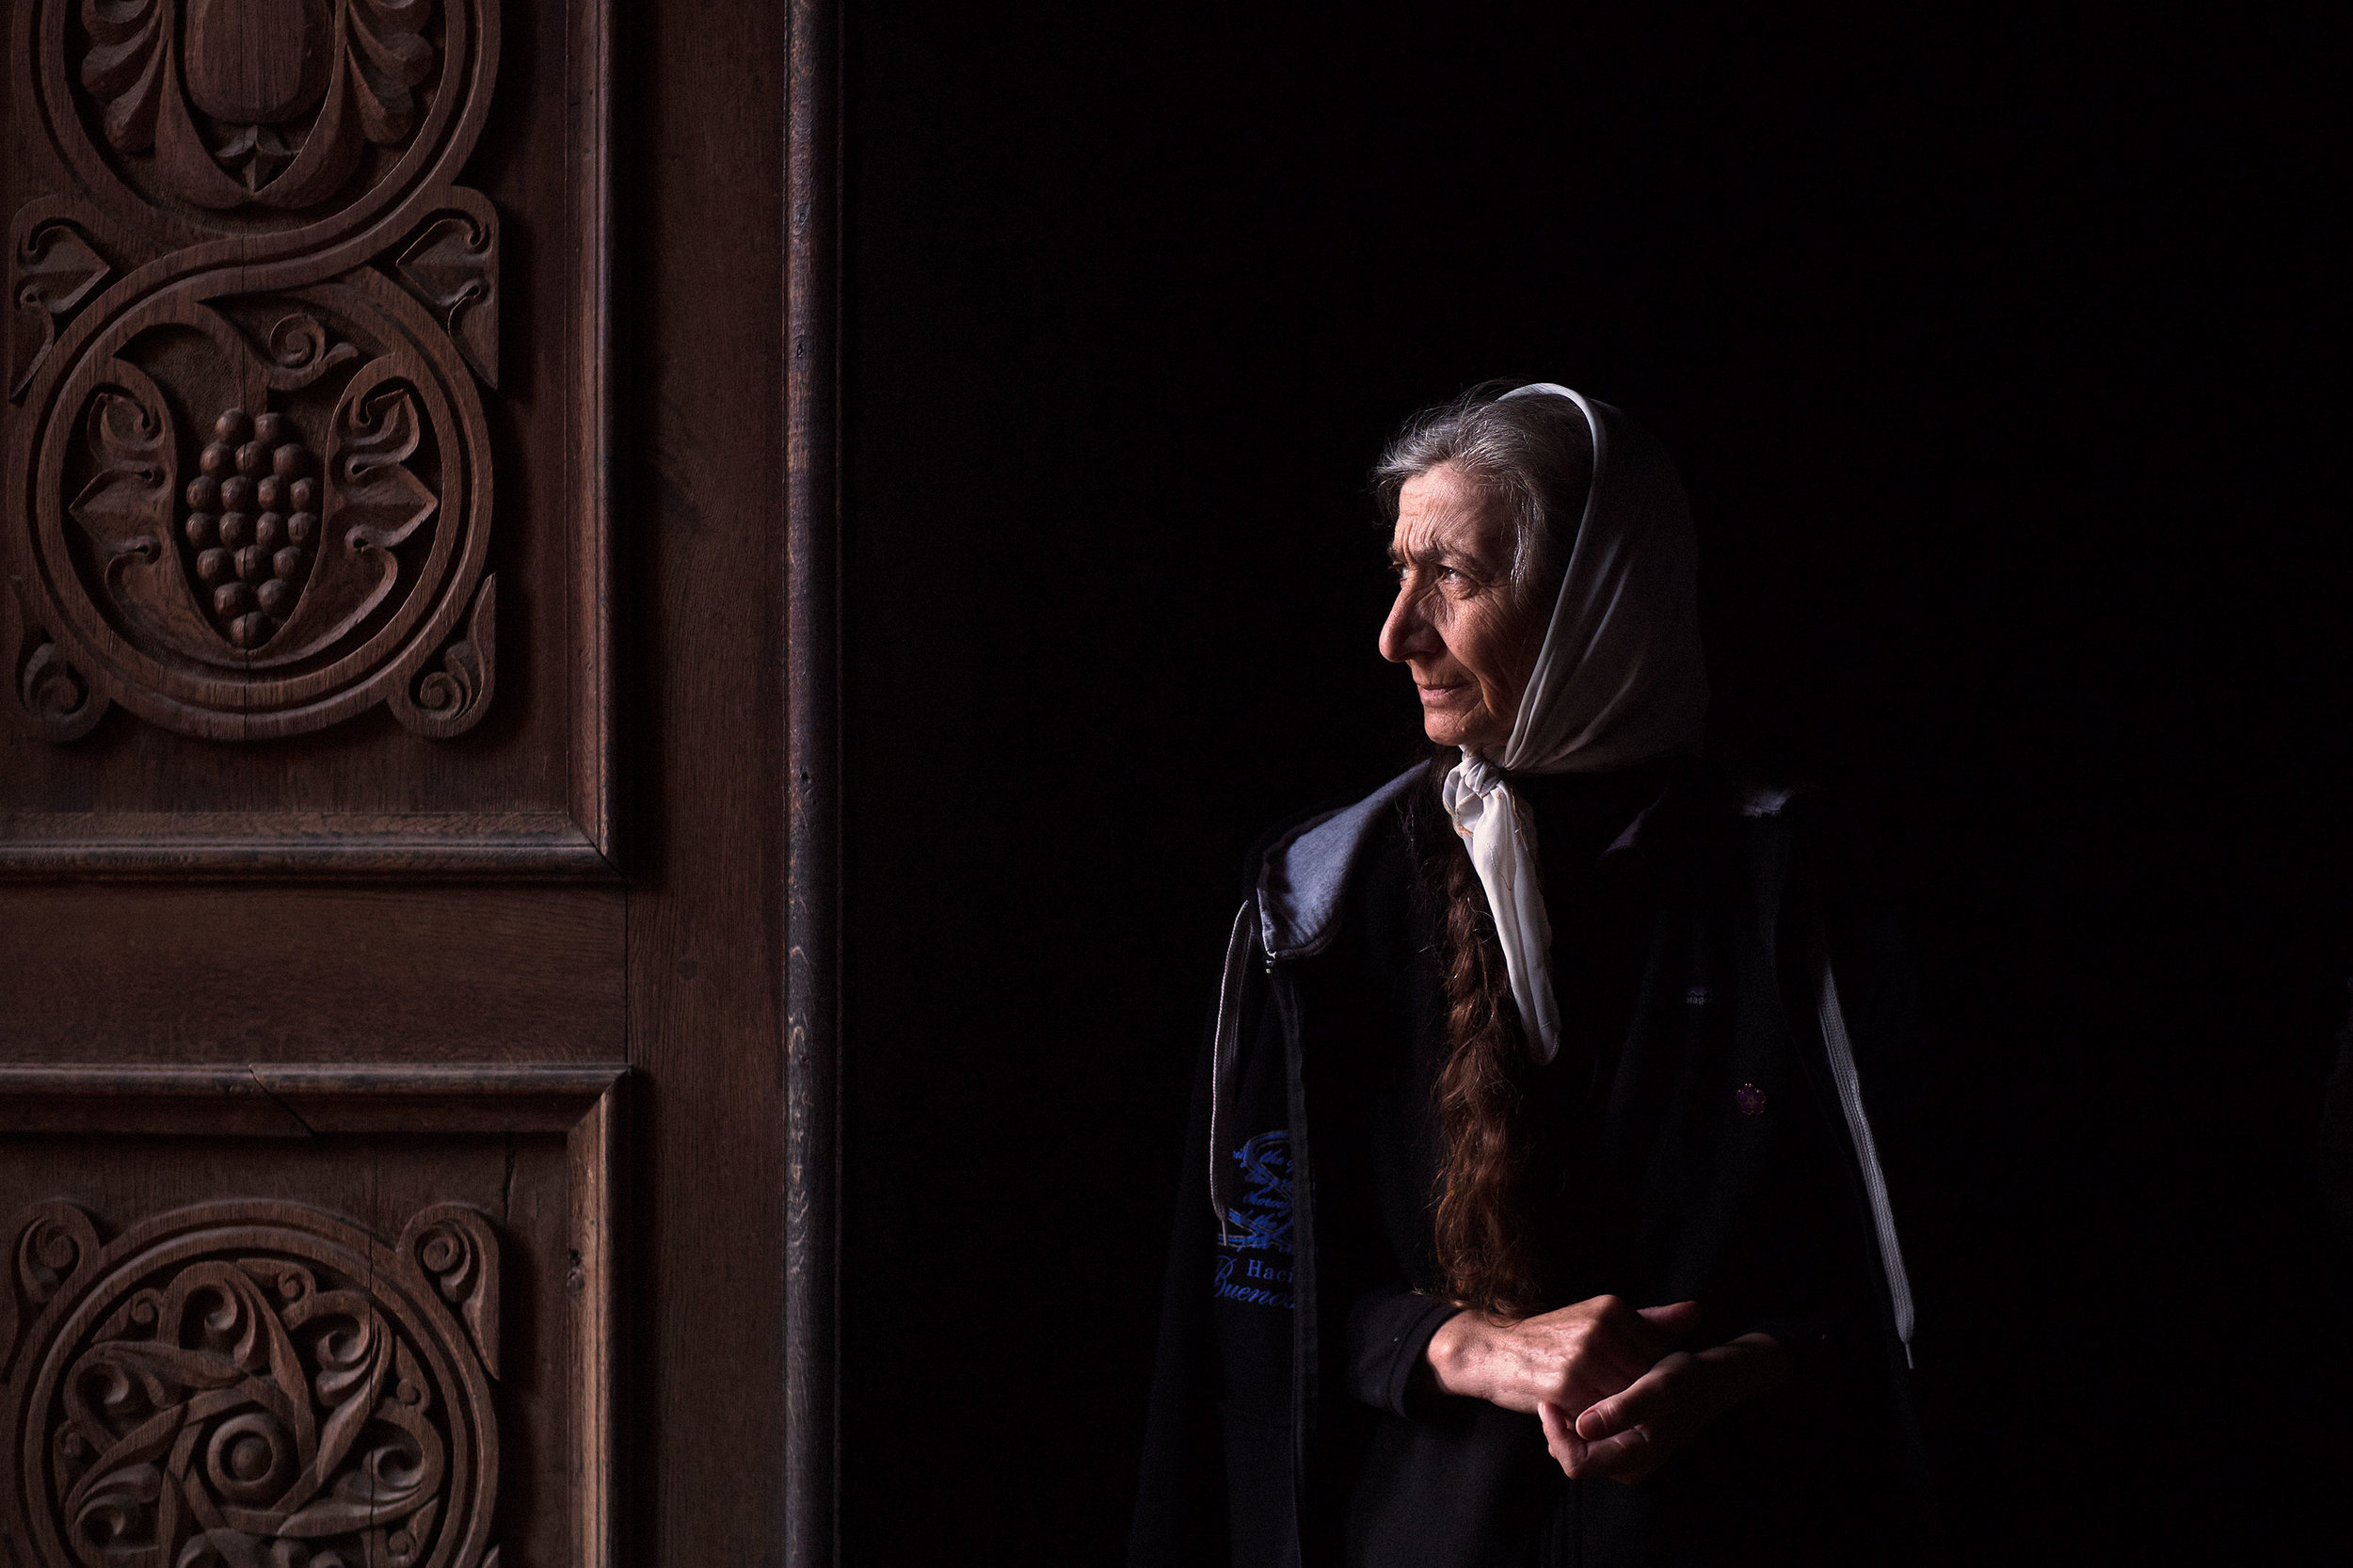 Armenia,-Tatev-monastery-woman-by-the-church-door